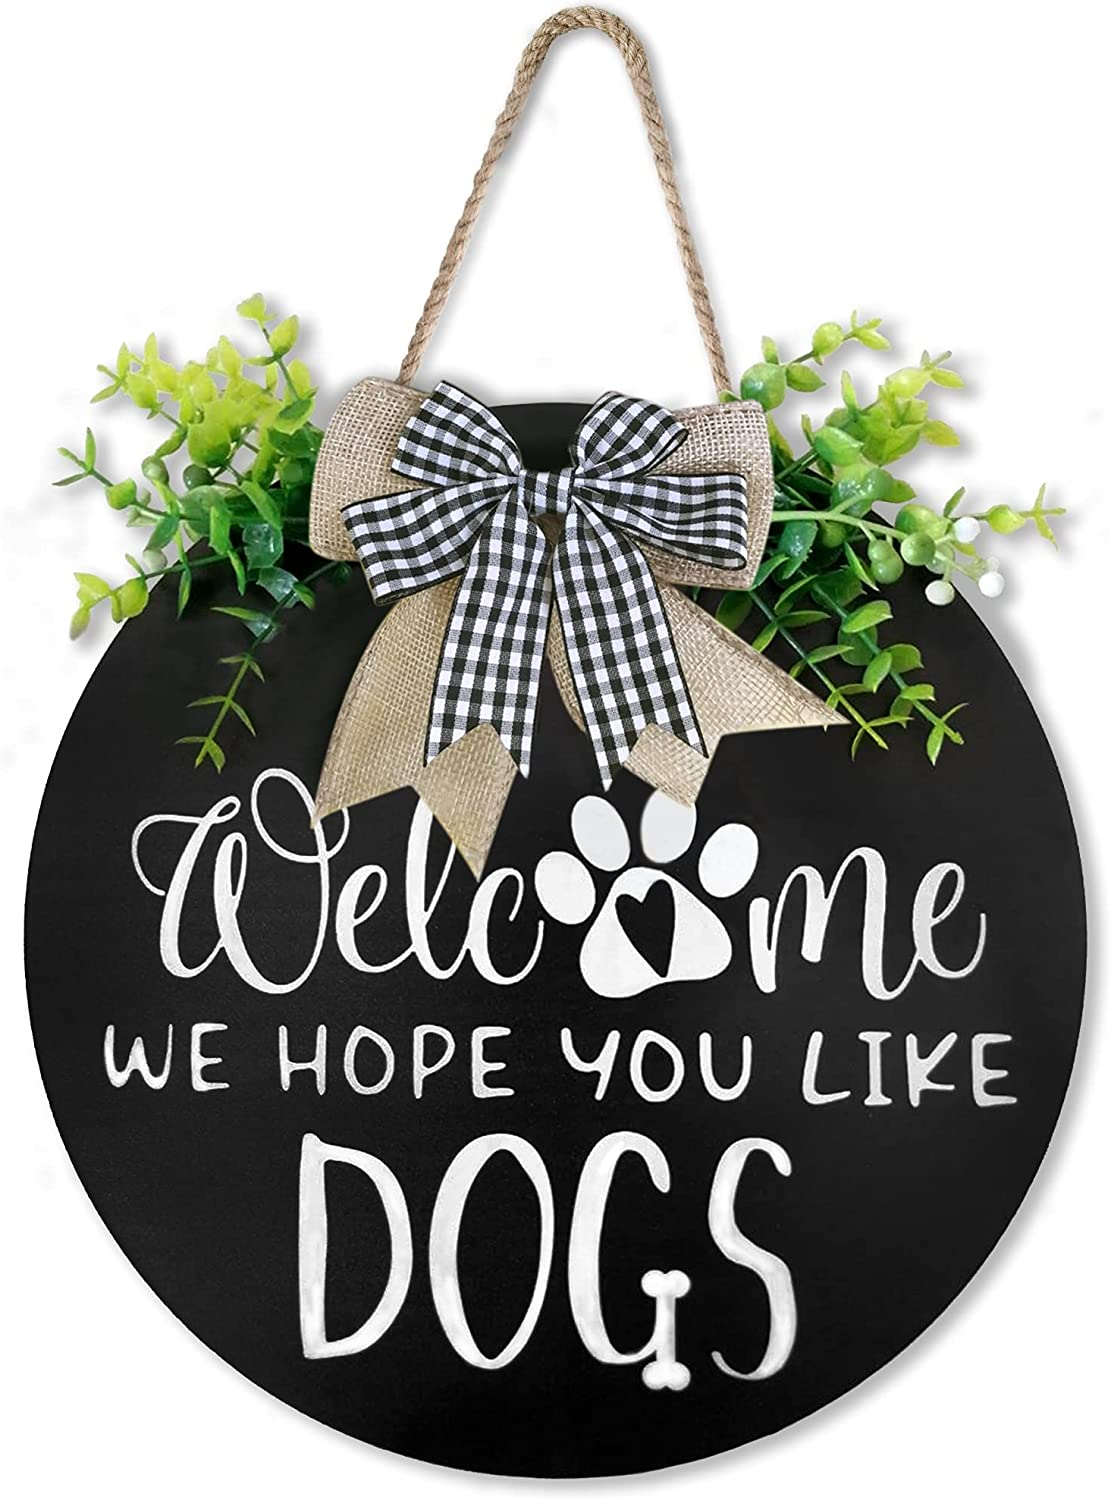 Welcome Wreath Sign for Front Door Decor-We Hope You Like Dogs Farmhouse Door Hanger,Rustic Welcome Sign Front Porch Hanging for Home Decoration,Housewarming Gift for Dog Lovers 12 x 12